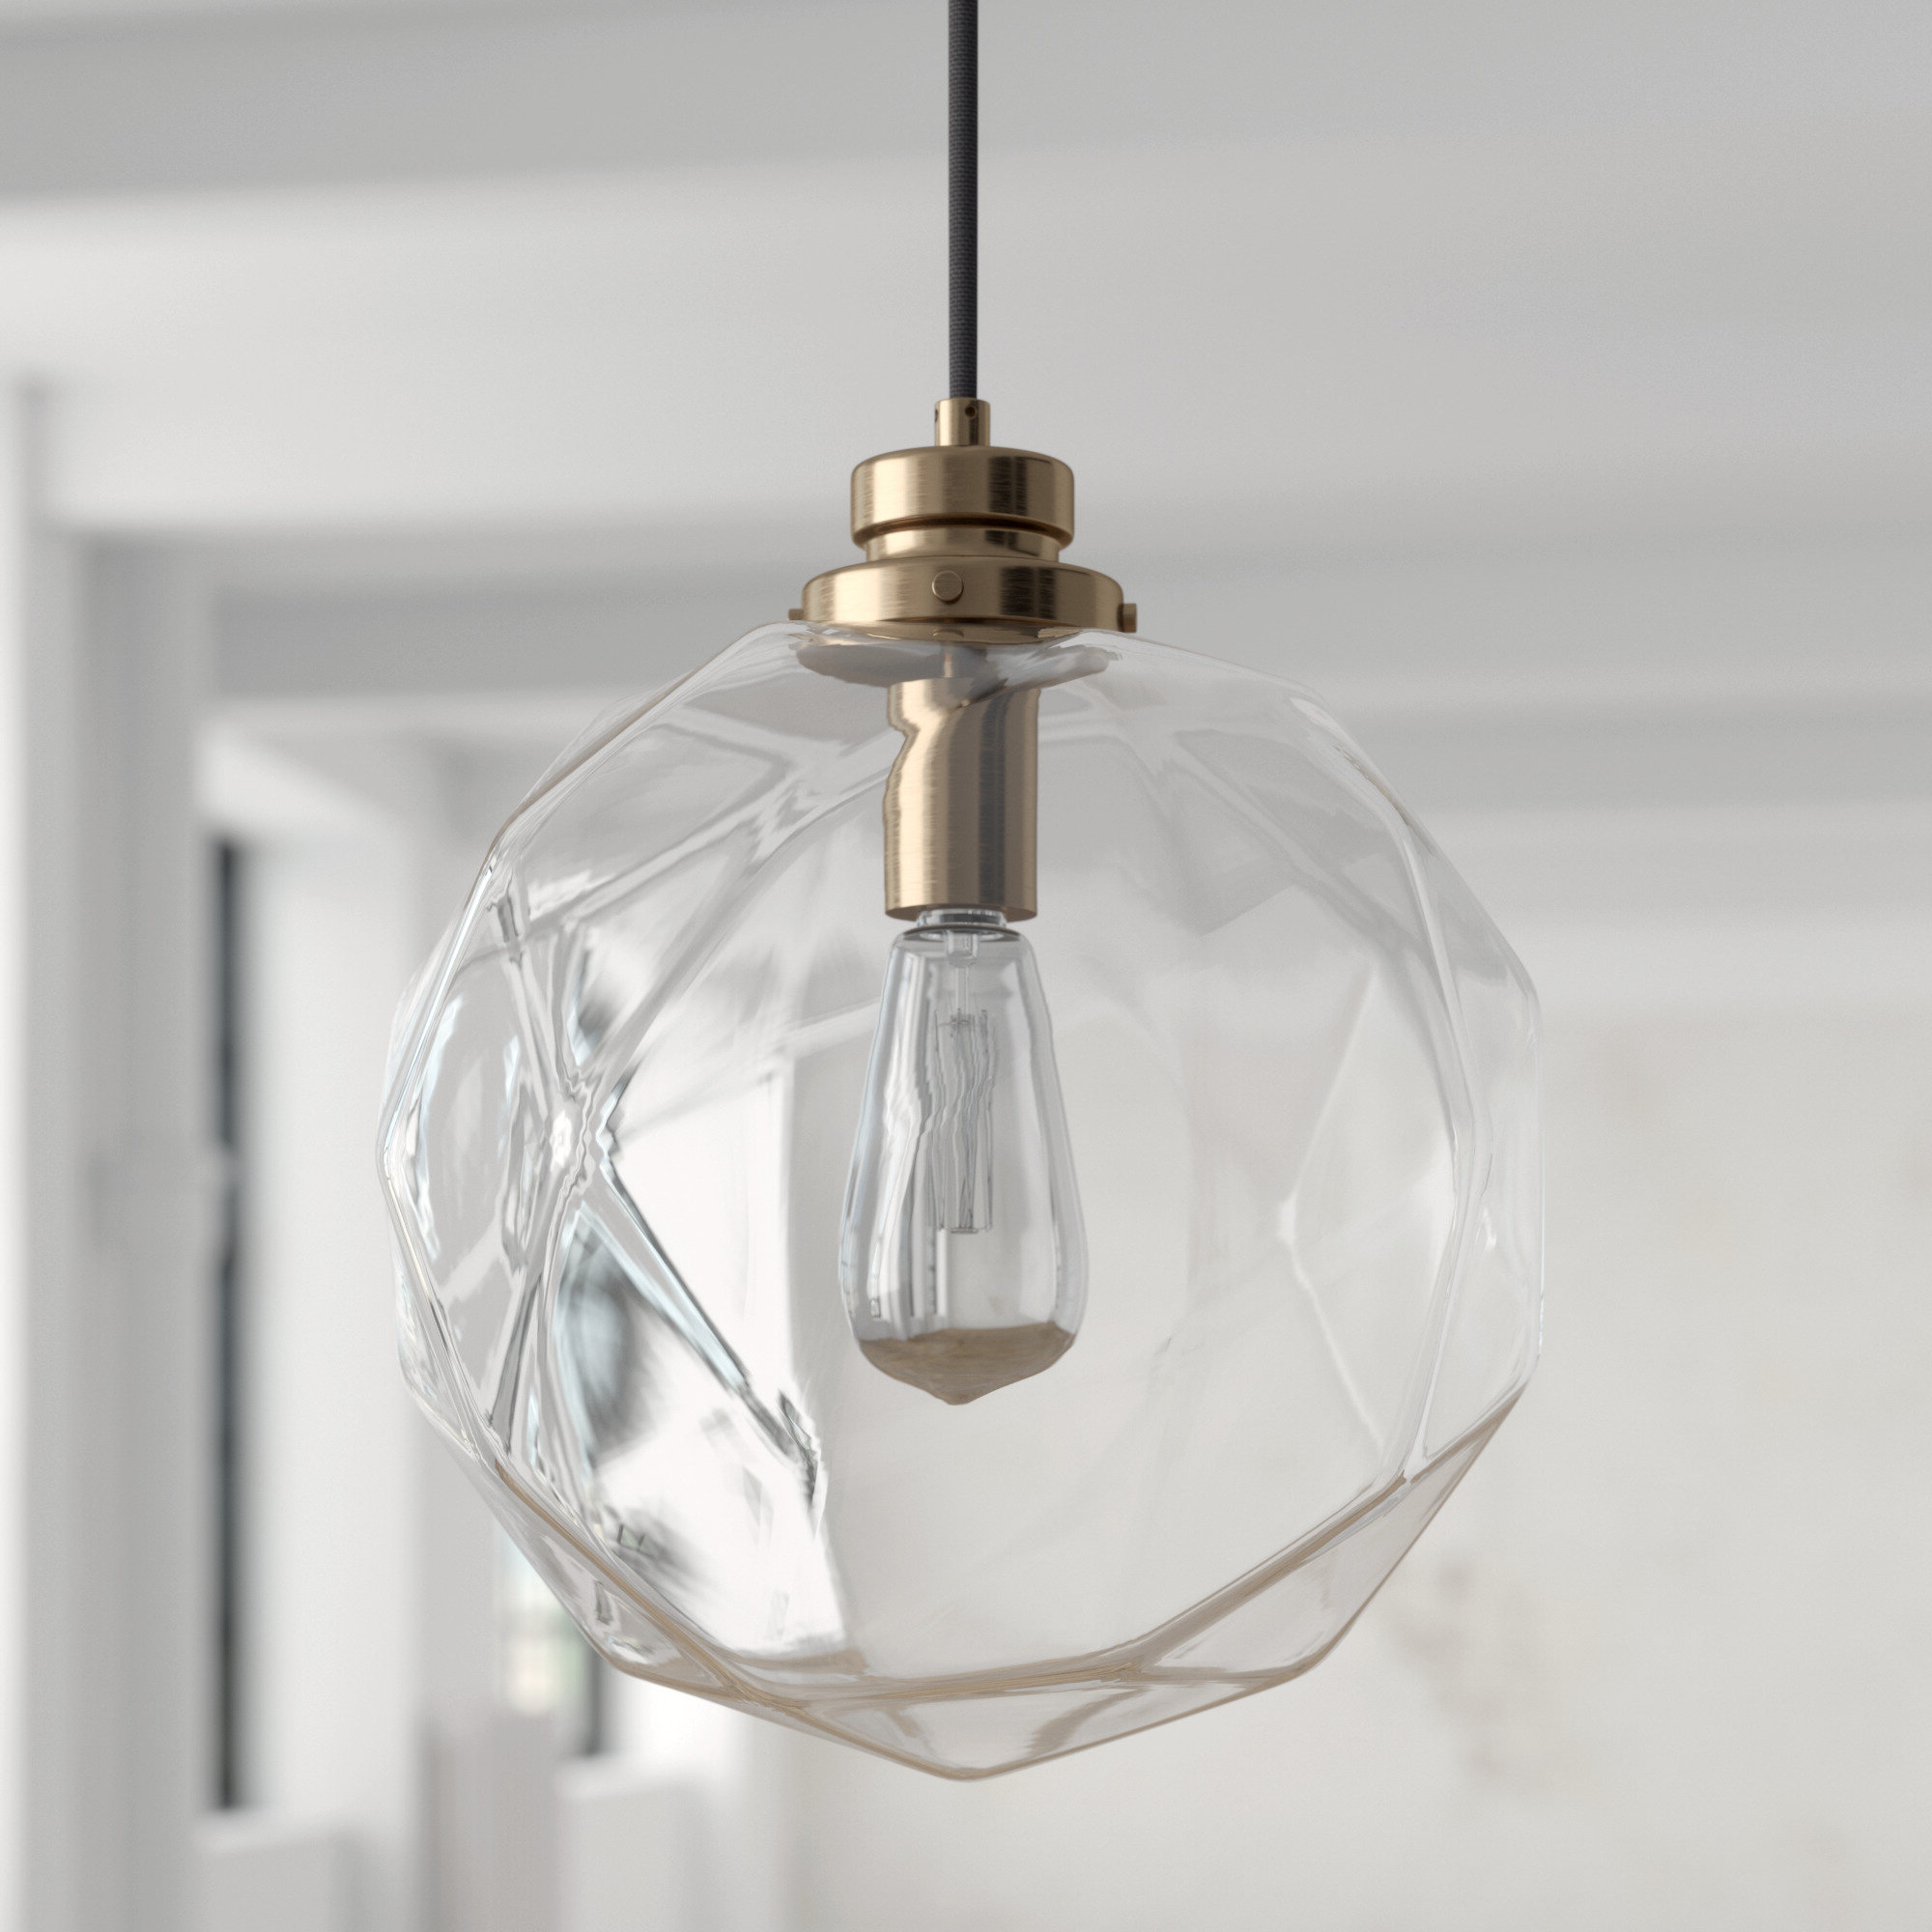 1 Light Geometric Globe Pendant In Well Known 1 Light Geometric Globe Pendants (Gallery 2 of 25)